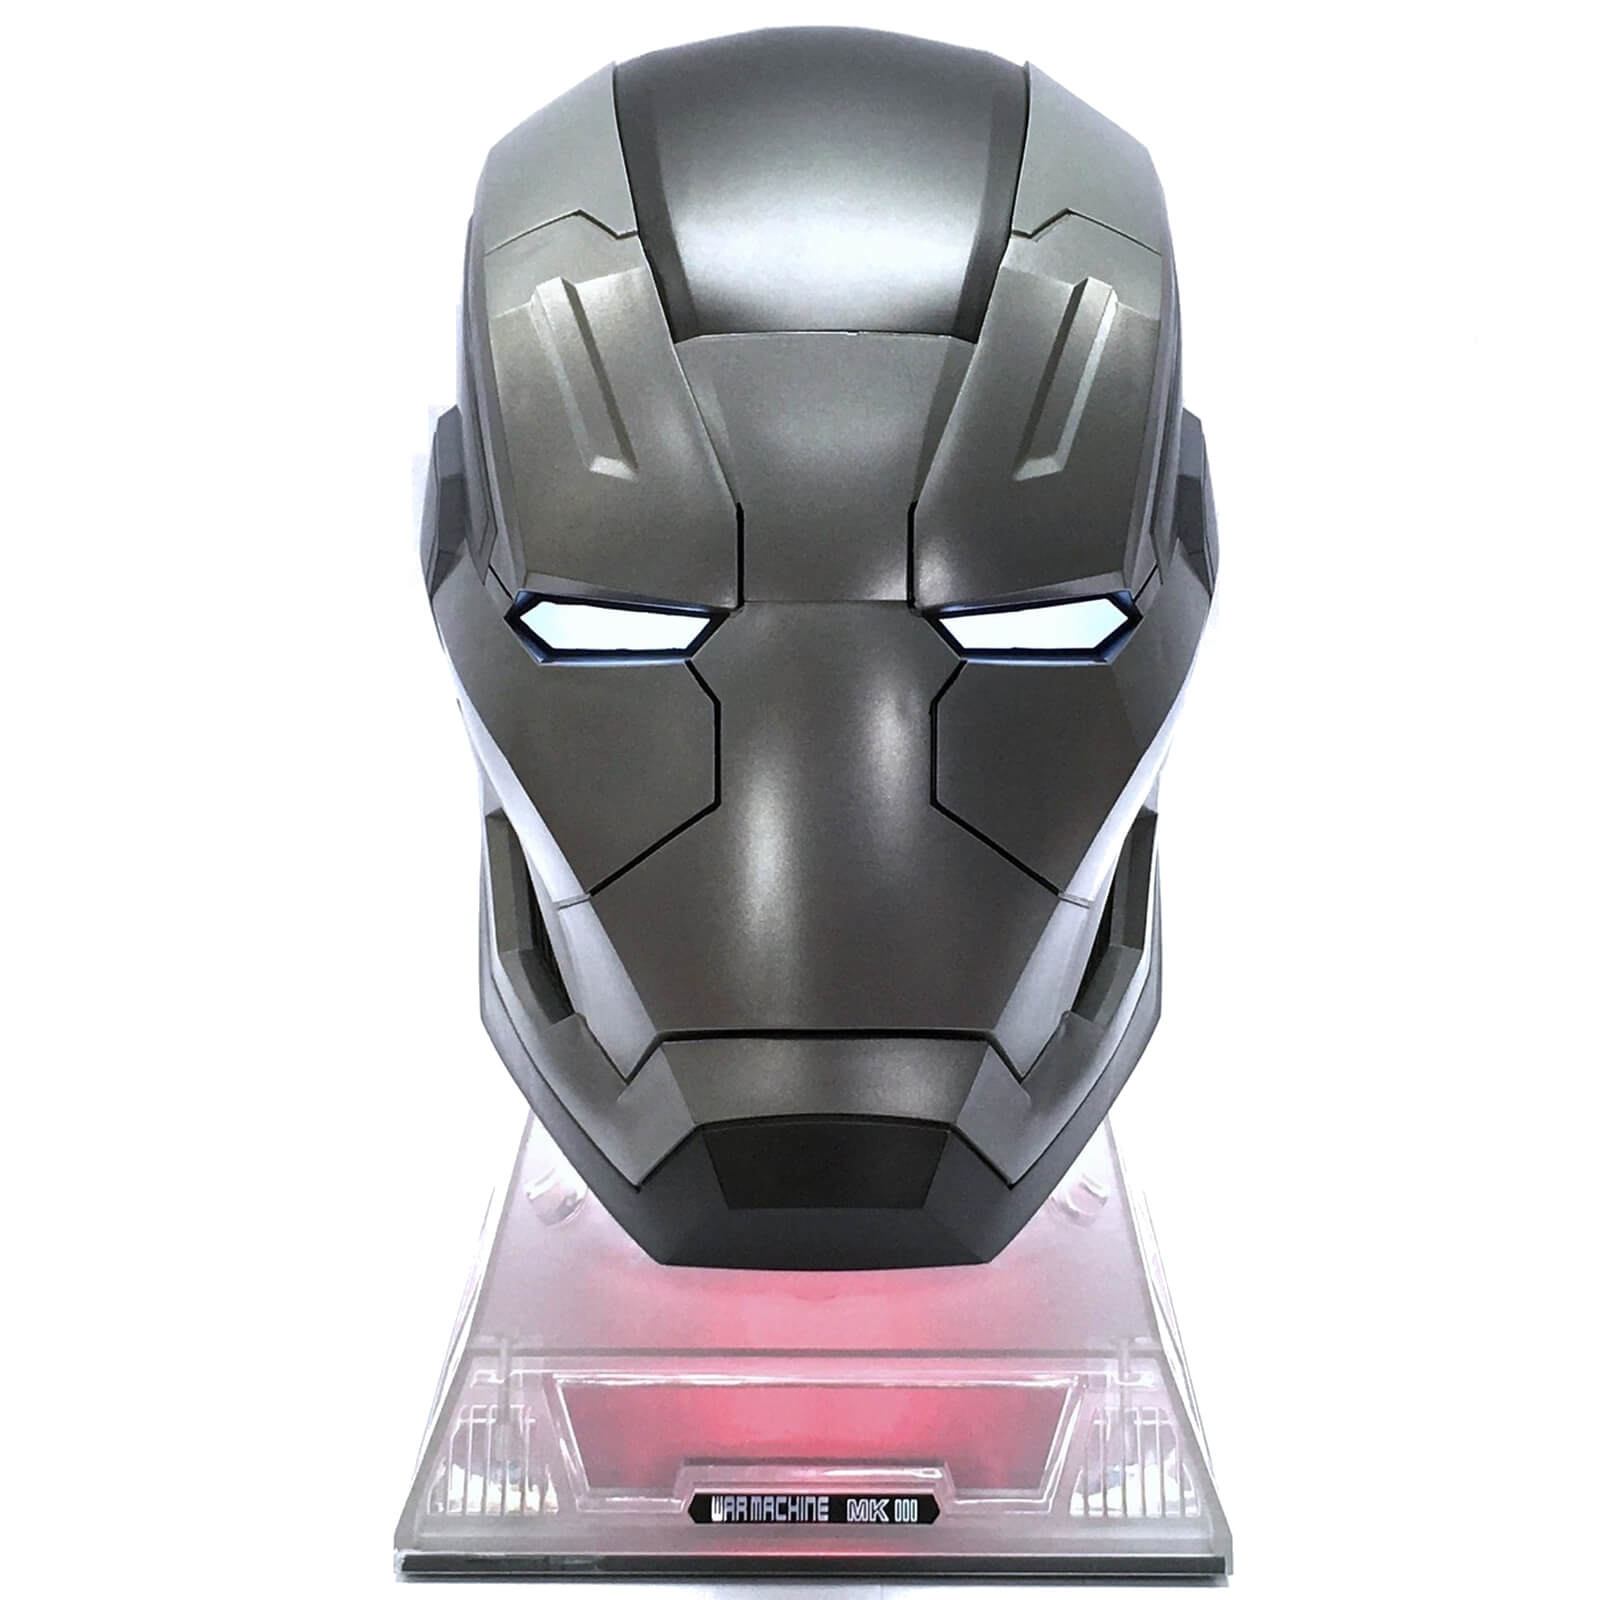 Marvel Iron Man War Machine Mark 3 Helmet Life-Size Bluetooth Speaker  4f44e63bb7c0